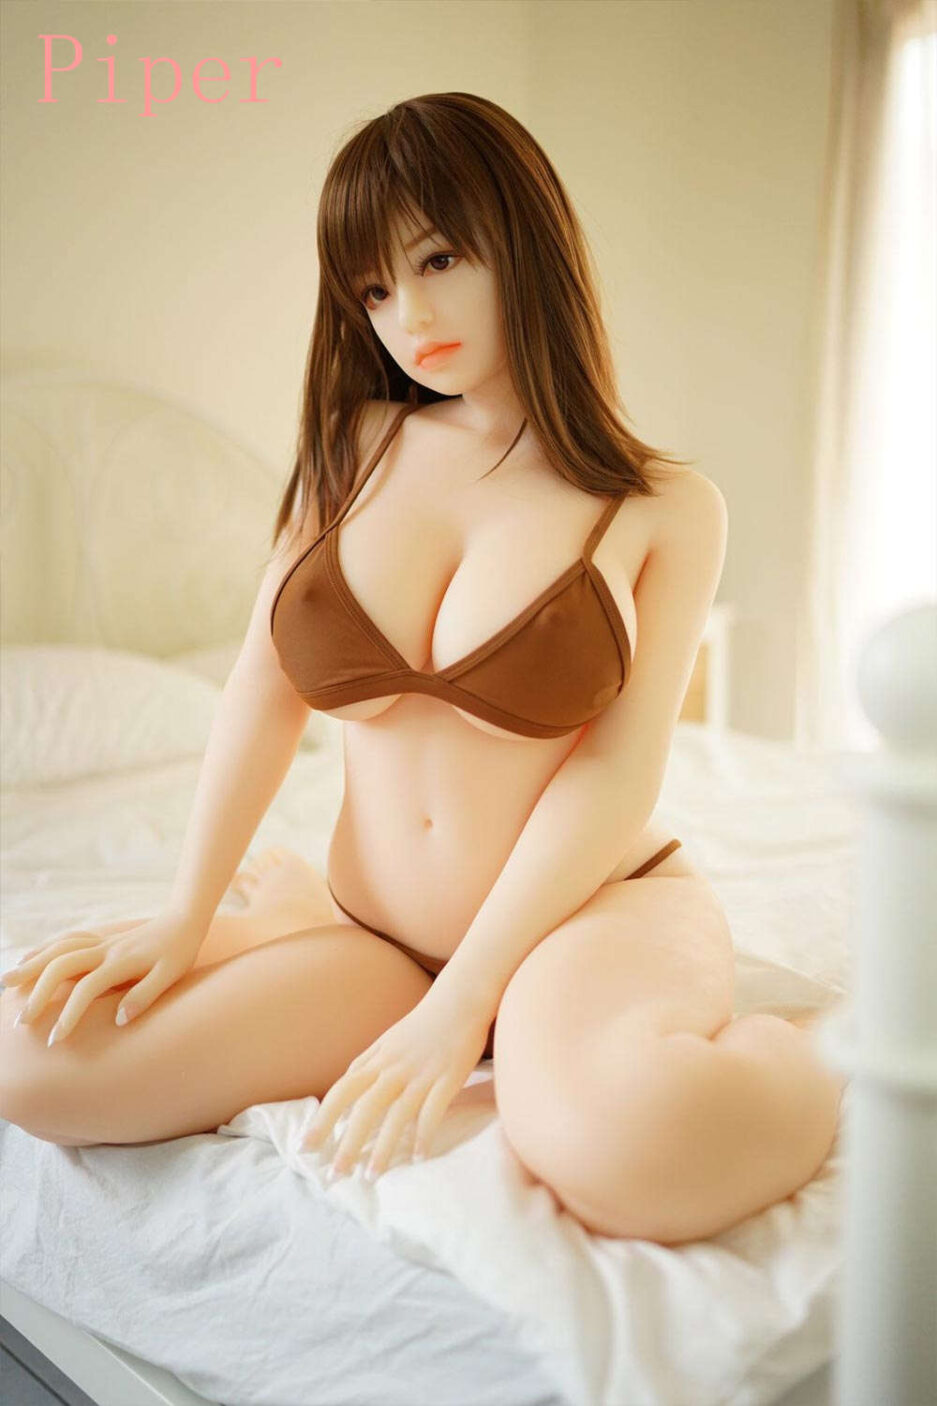 Sex doll with hand between thighs